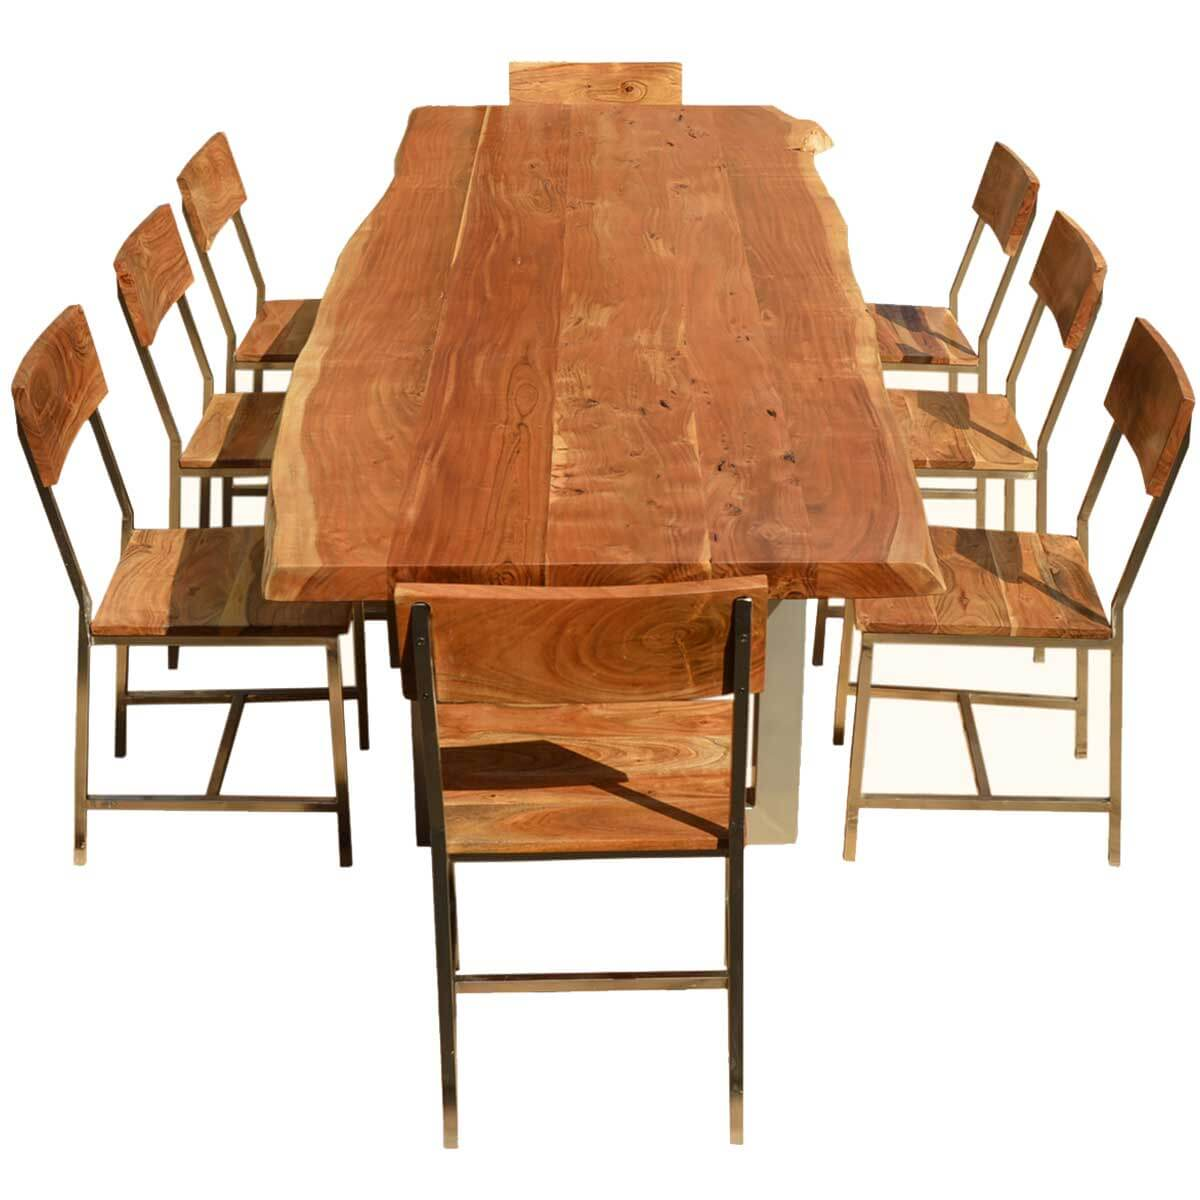 Dining Table 8 Chairs Live Edge Acacia Wood Iron 106